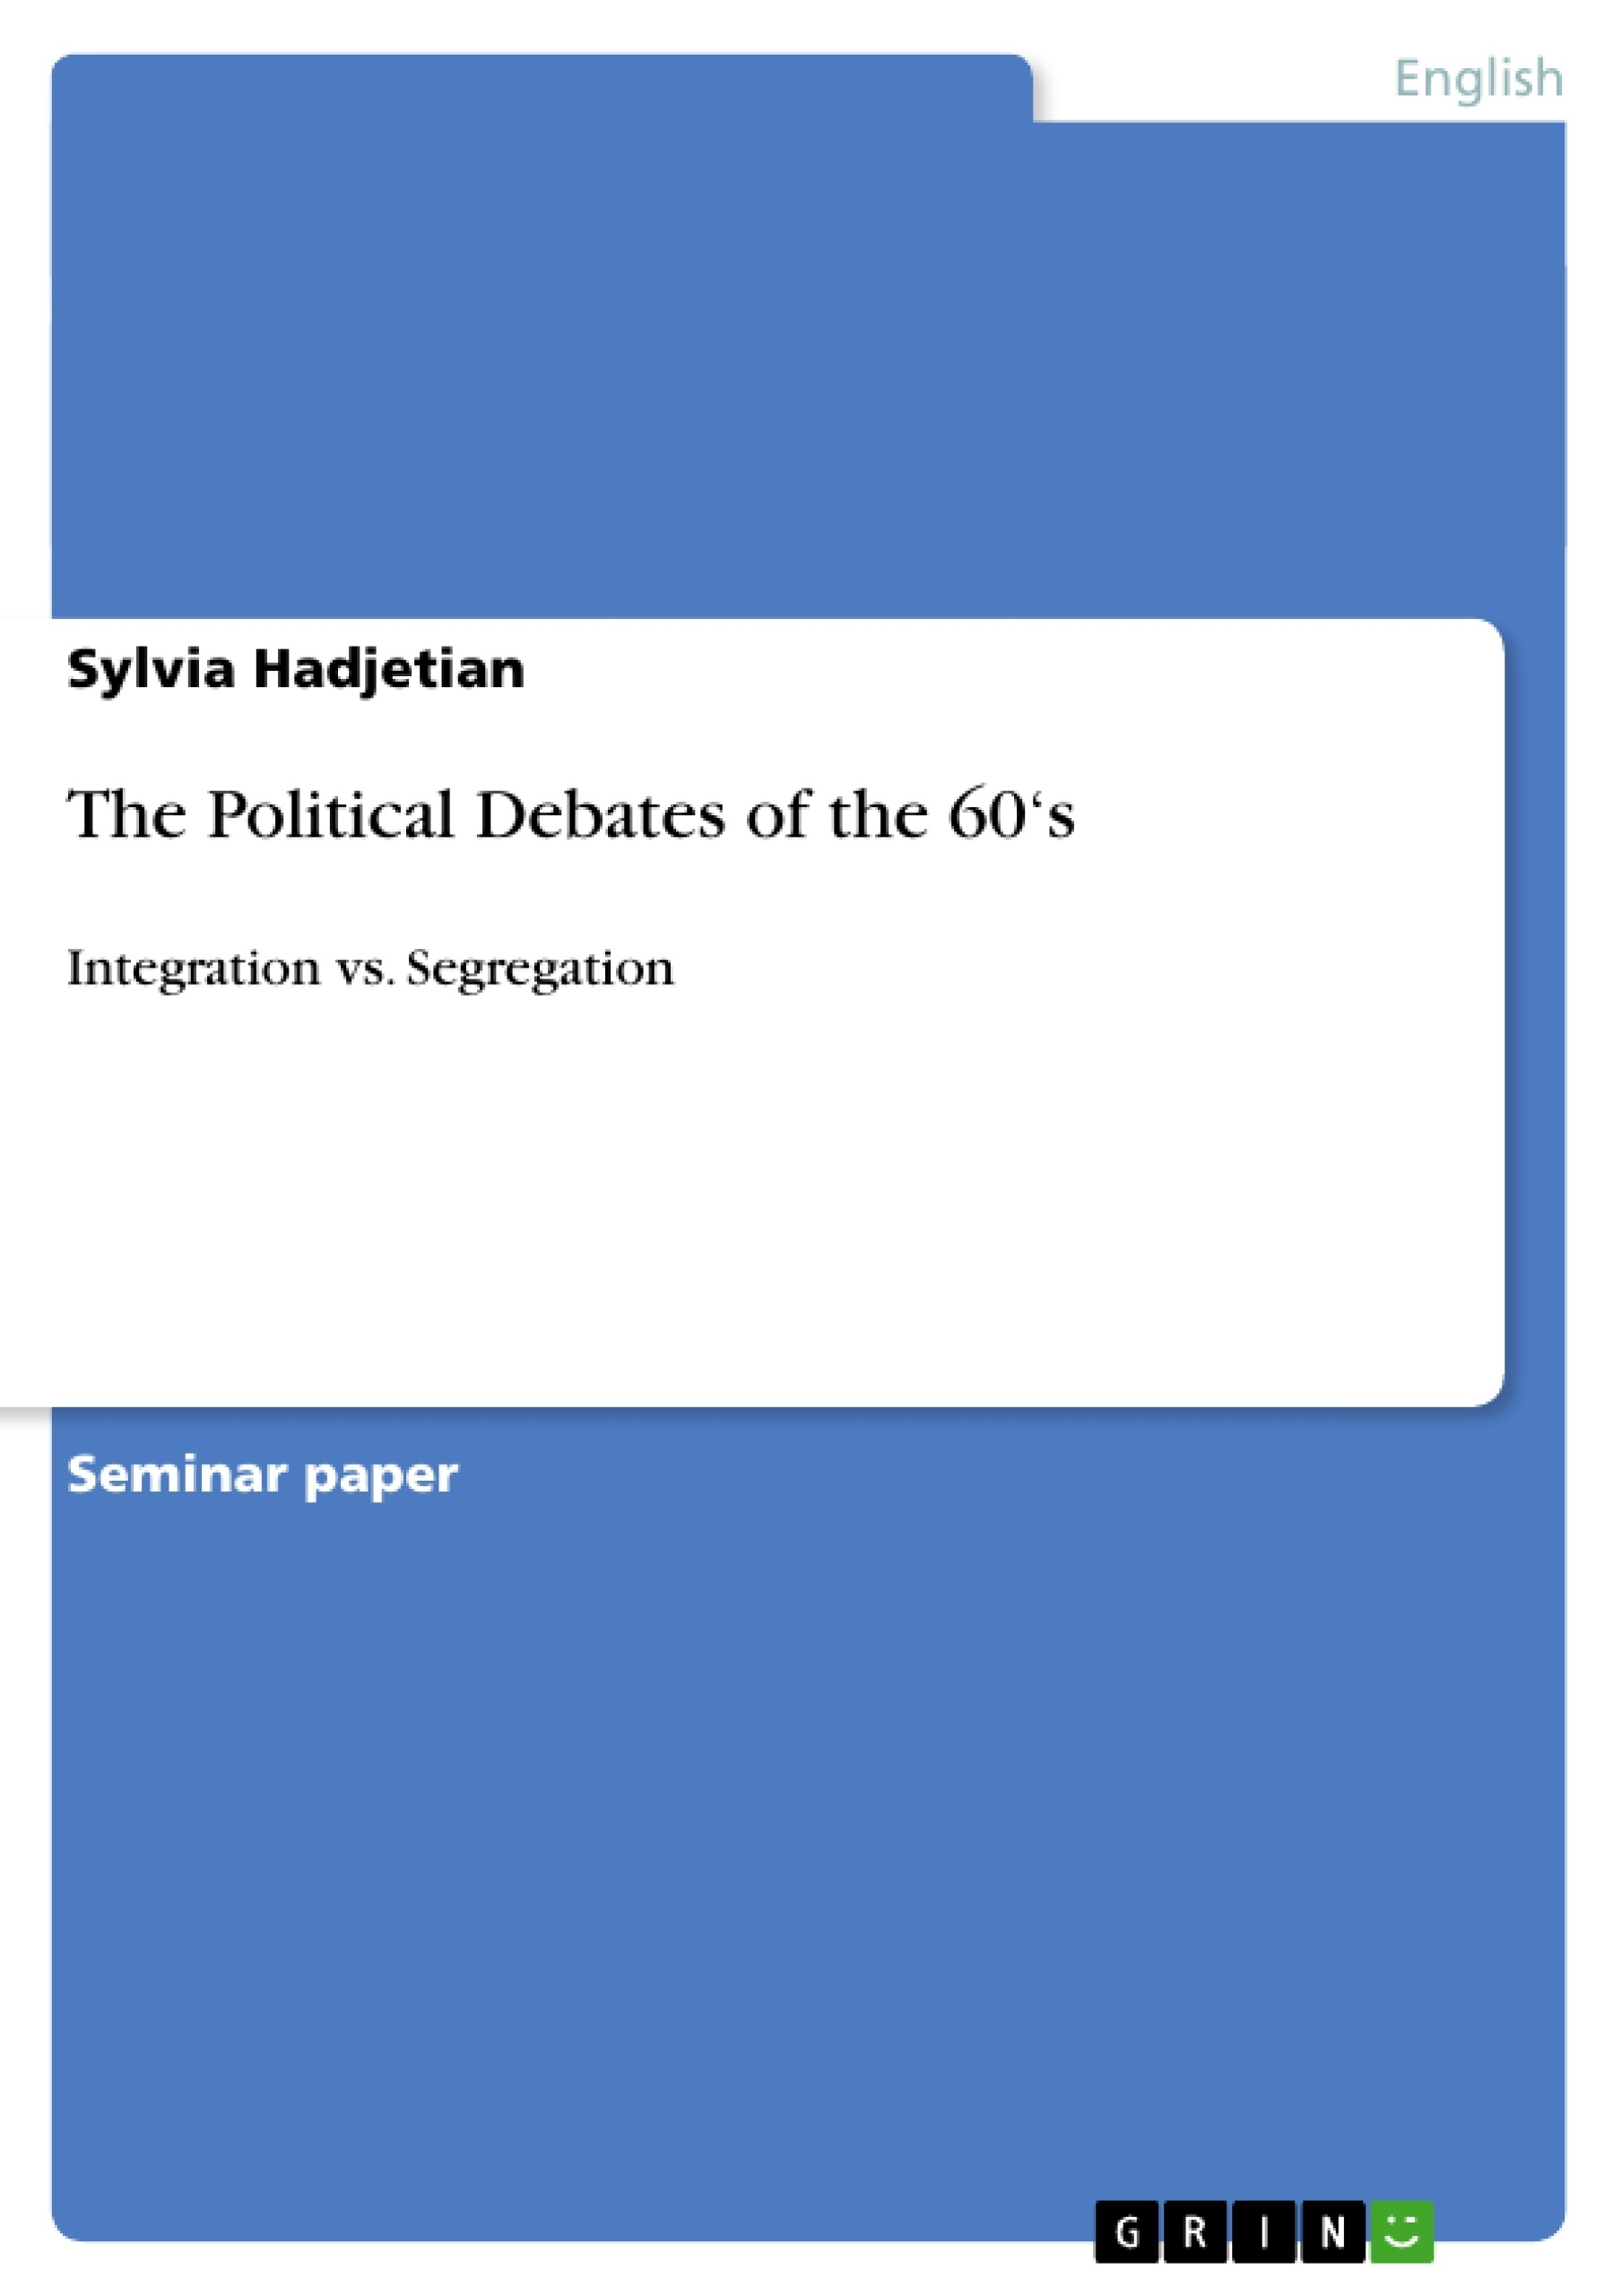 Title: The Political Debates of the 60's